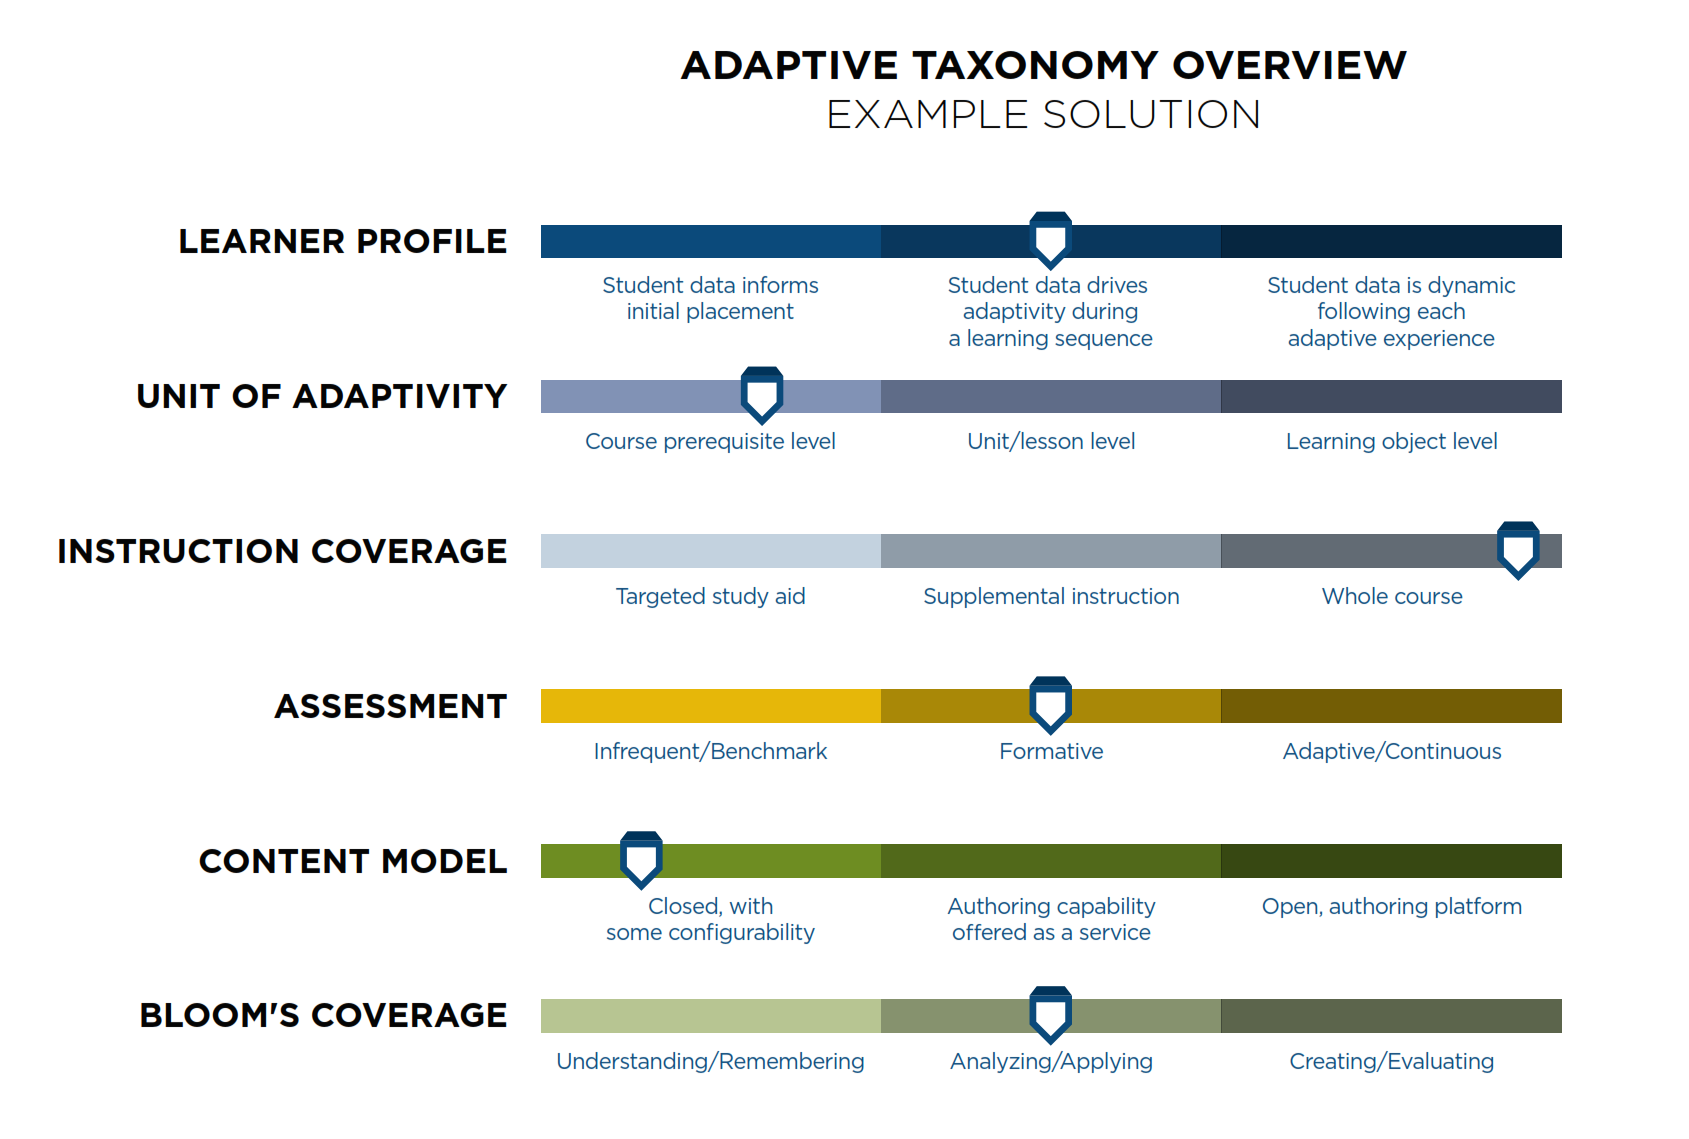 files/images/adaptive_taxonomy.png